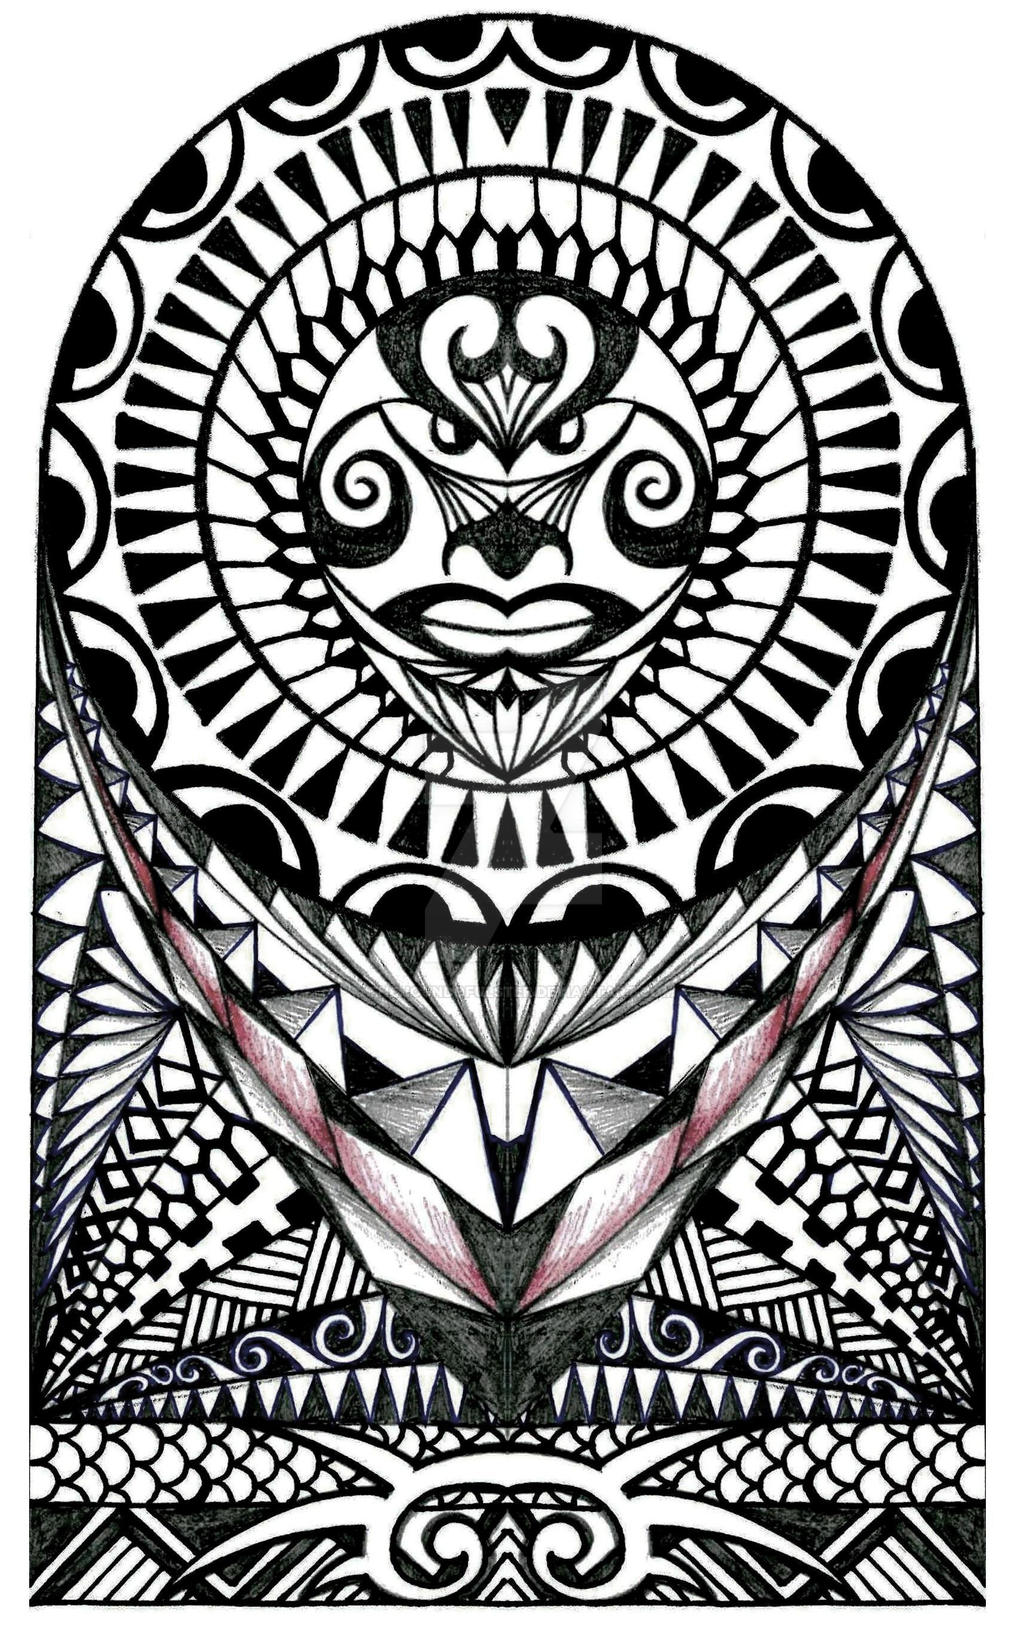 polynesian halfsleeve tattoo design by thehoundofulster on deviantart. Black Bedroom Furniture Sets. Home Design Ideas